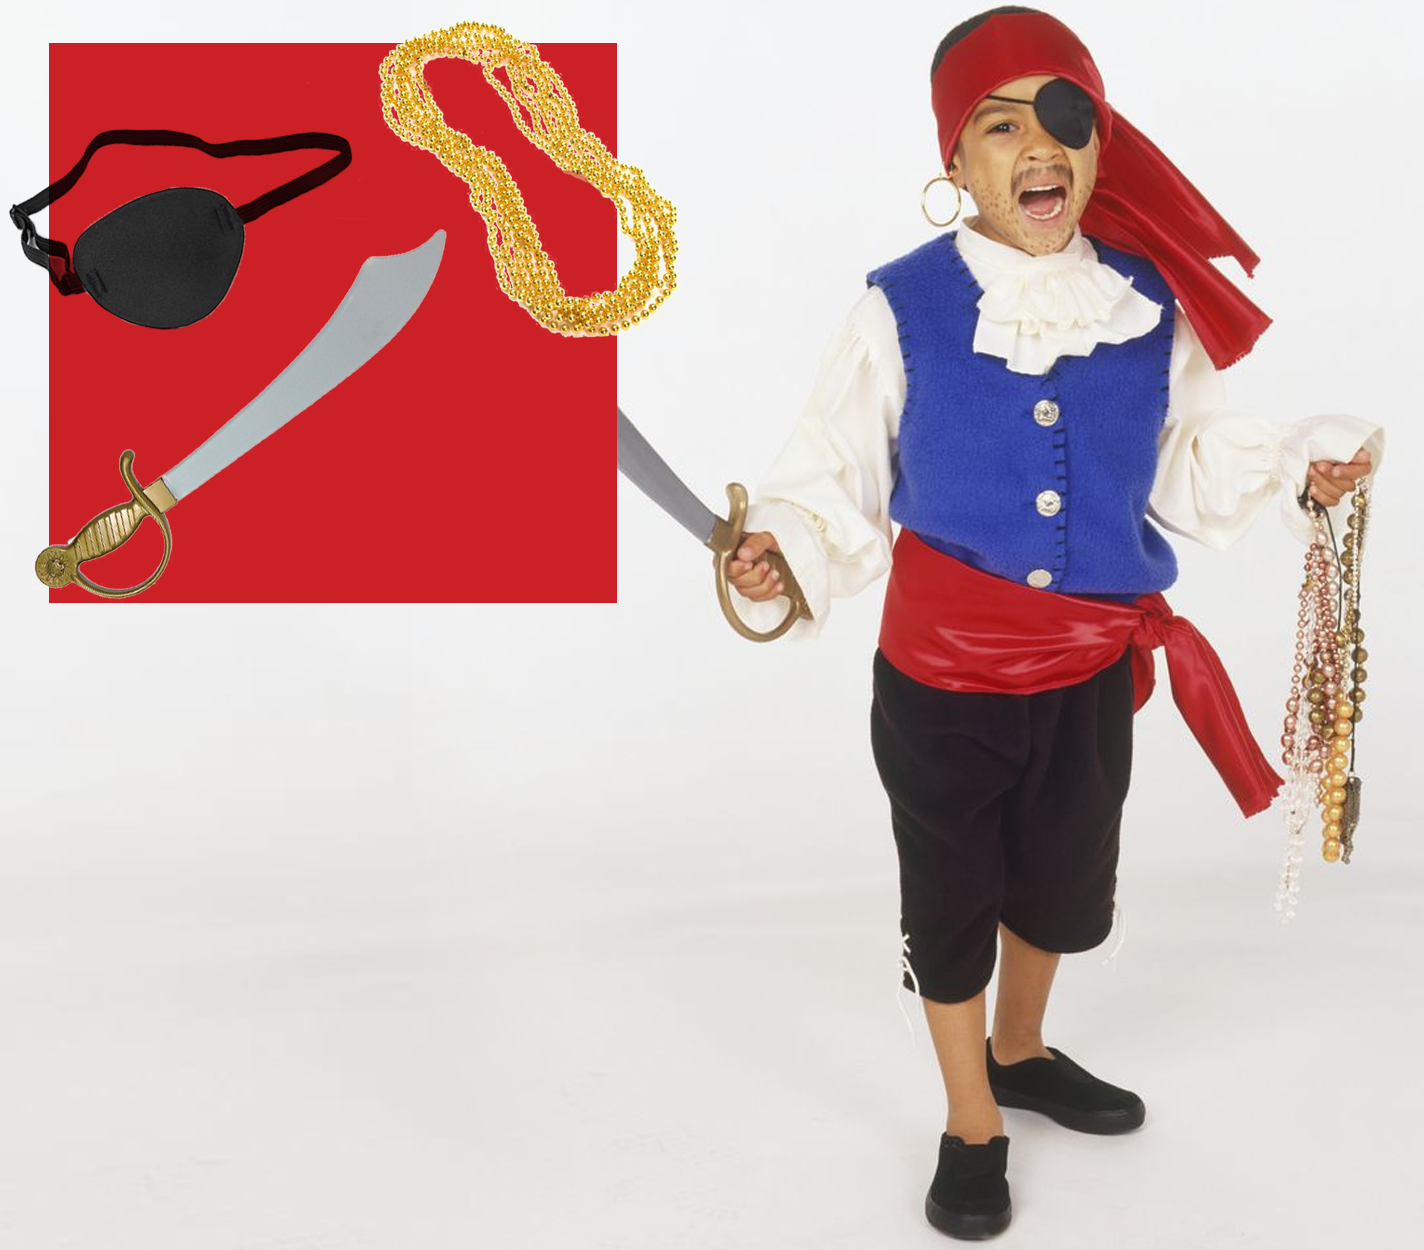 edacfa4dc DIY Pirate Costume - How to Make a Pirate Halloween Costume